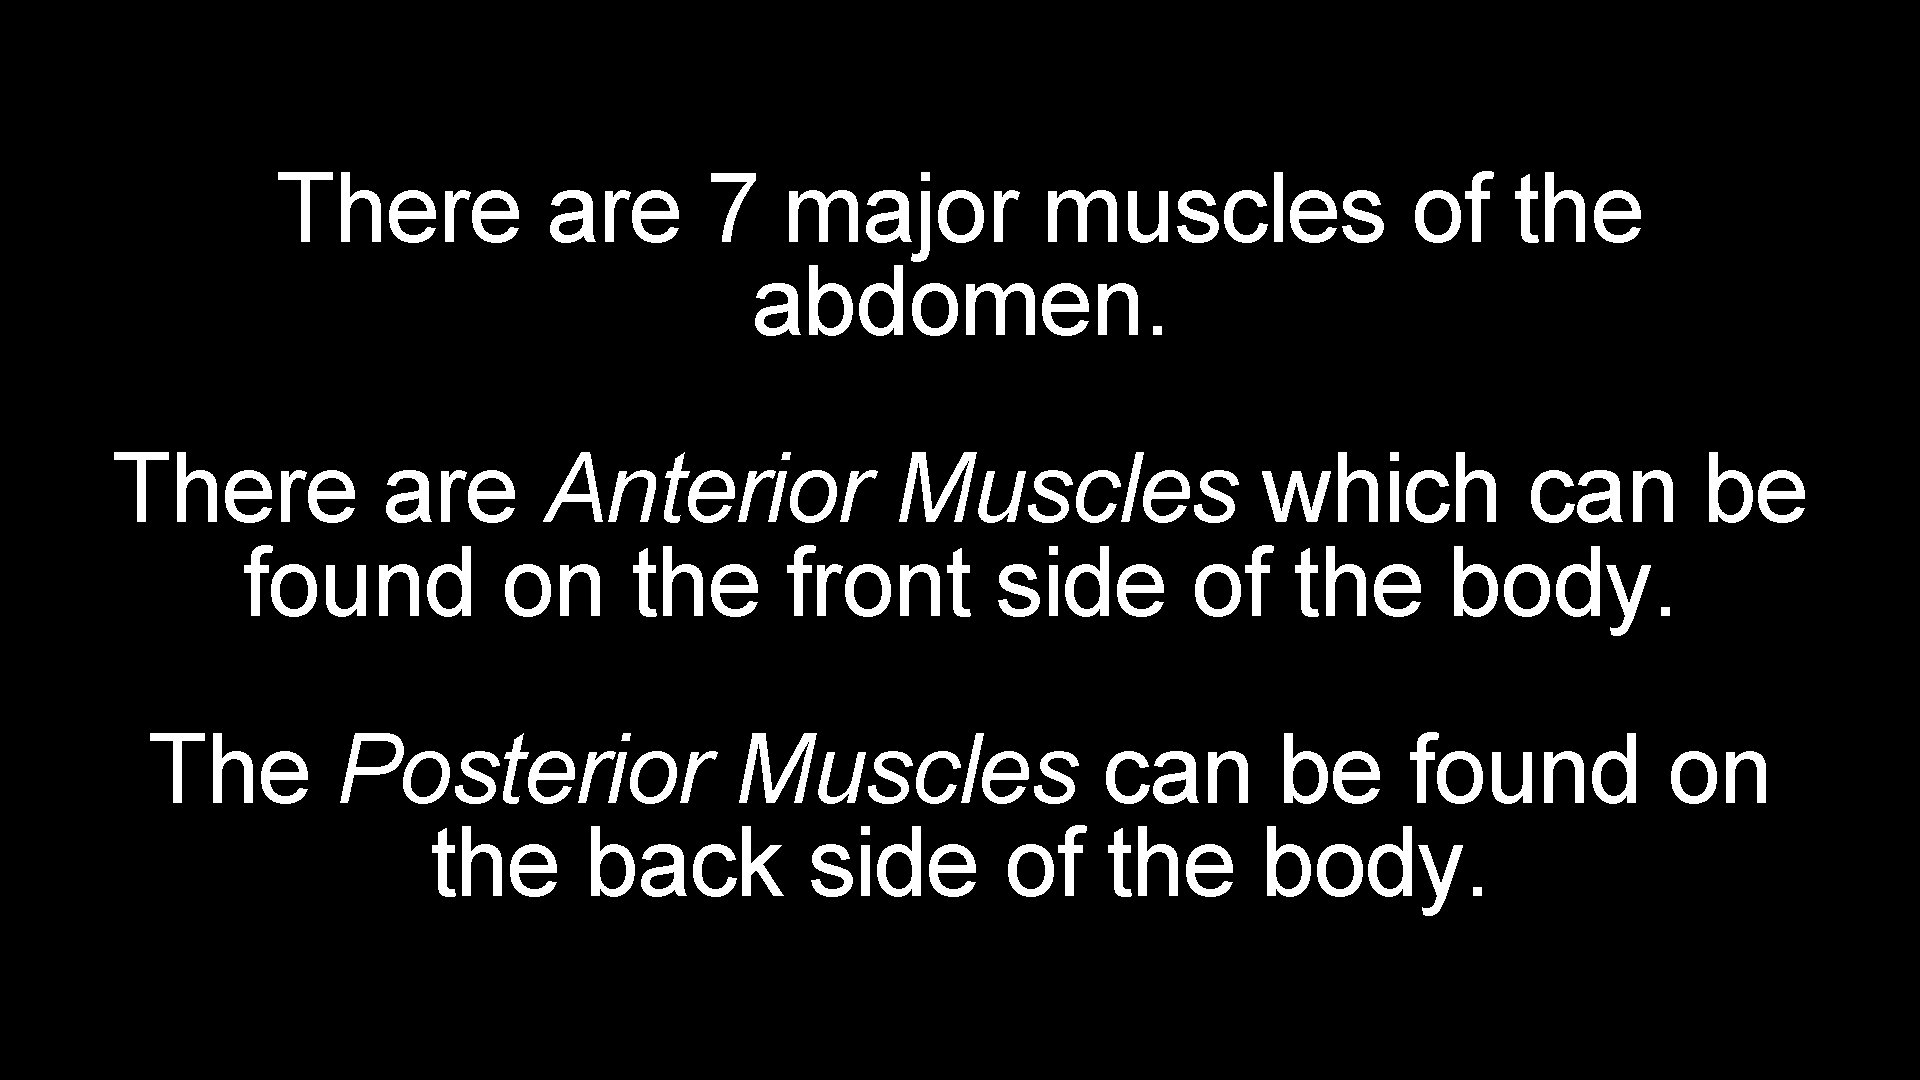 There are 7 major muscles of the abdomen. There are Anterior Muscles which can